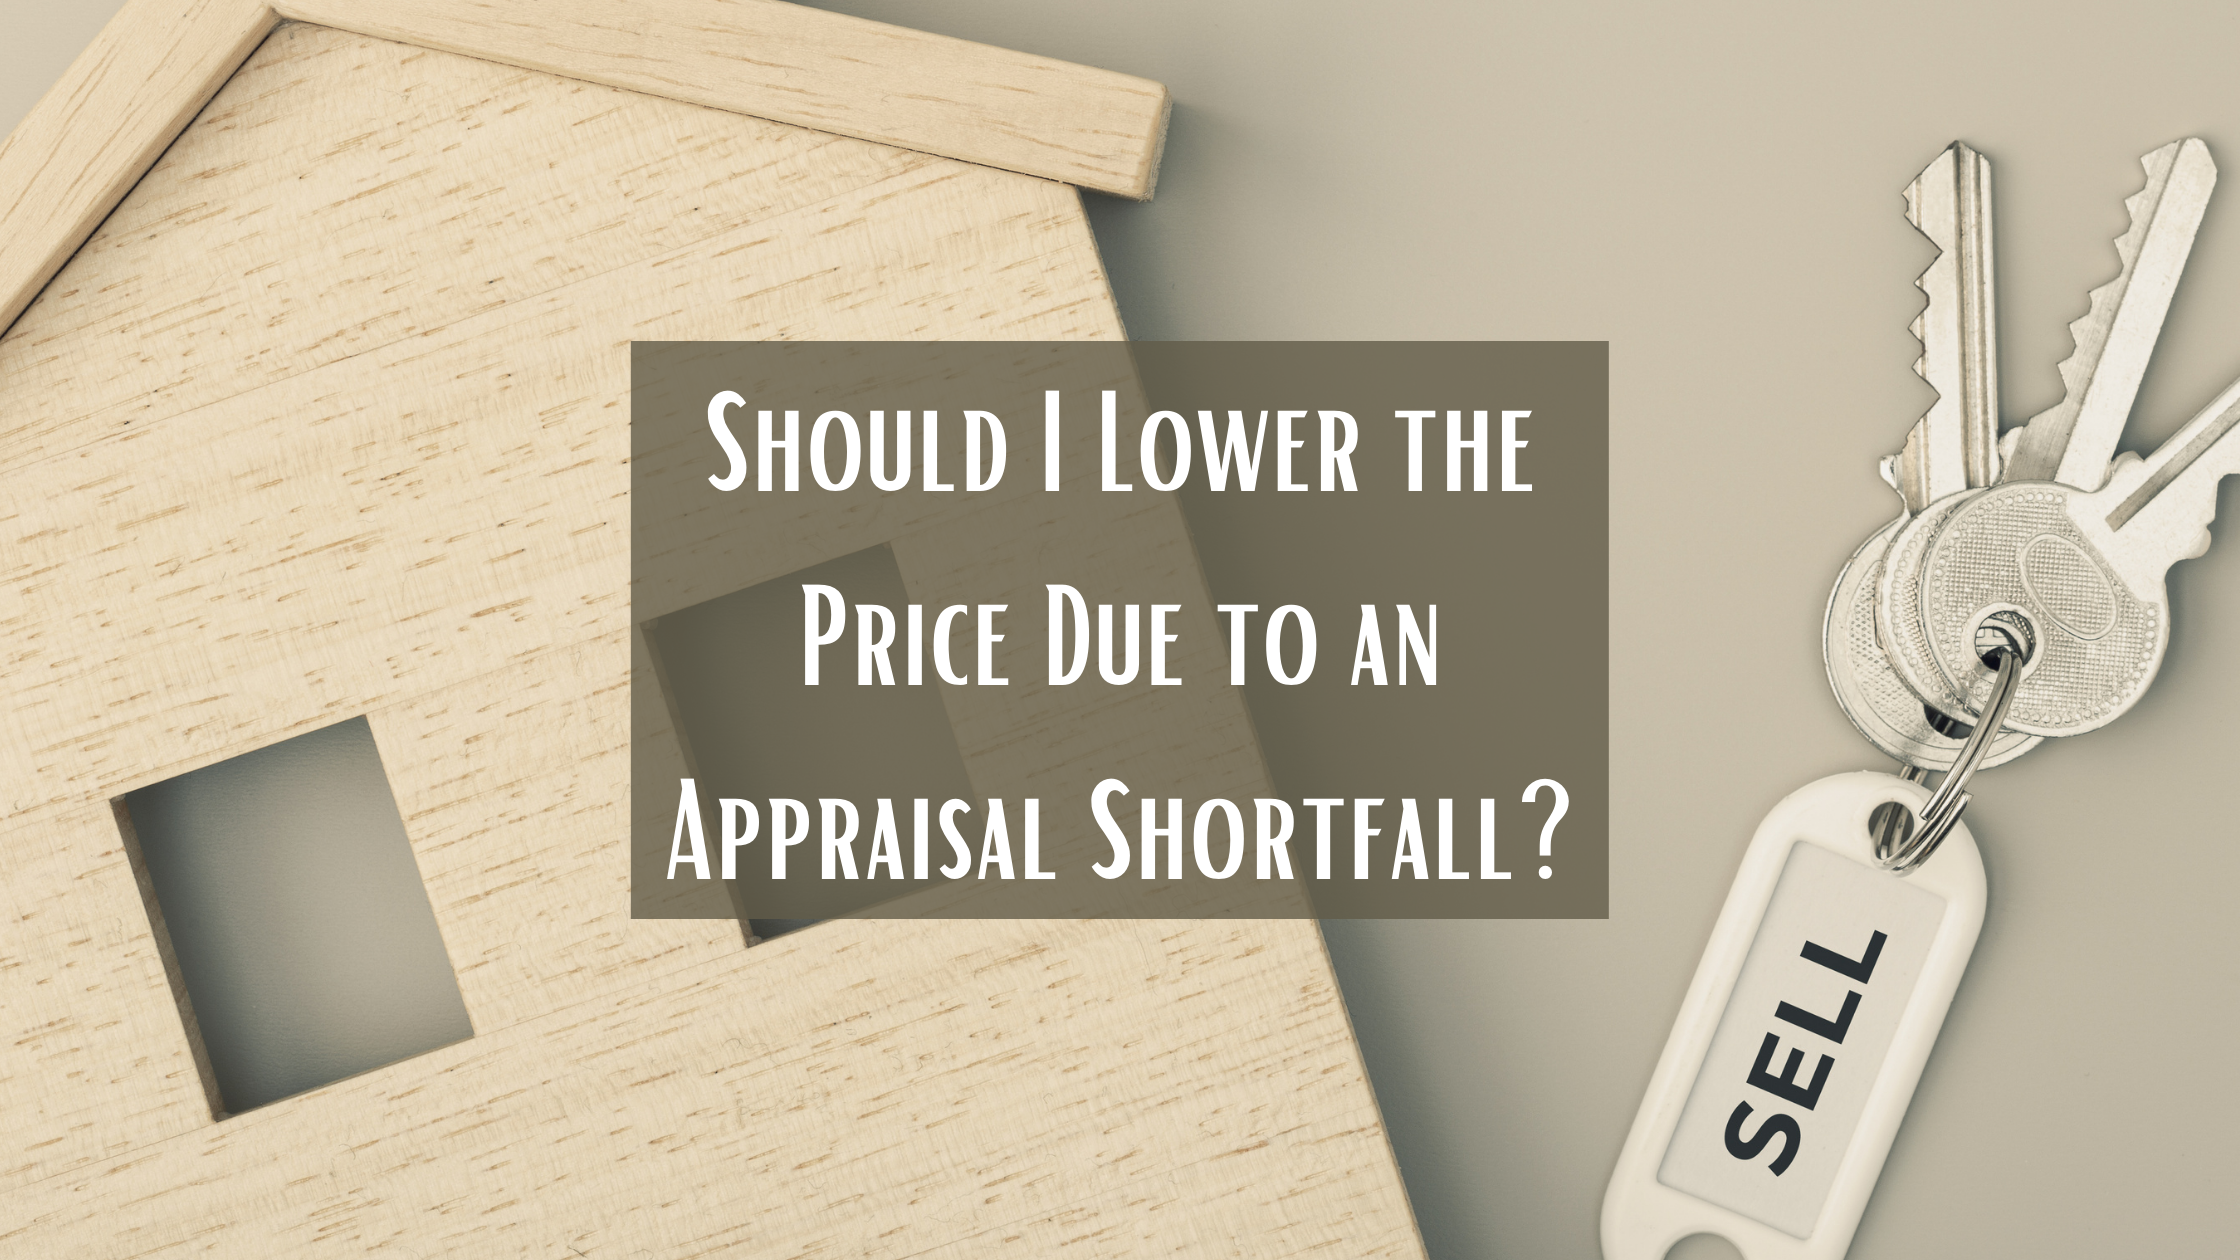 Should I Lower the Price Due to an Appraisal Shortfall?